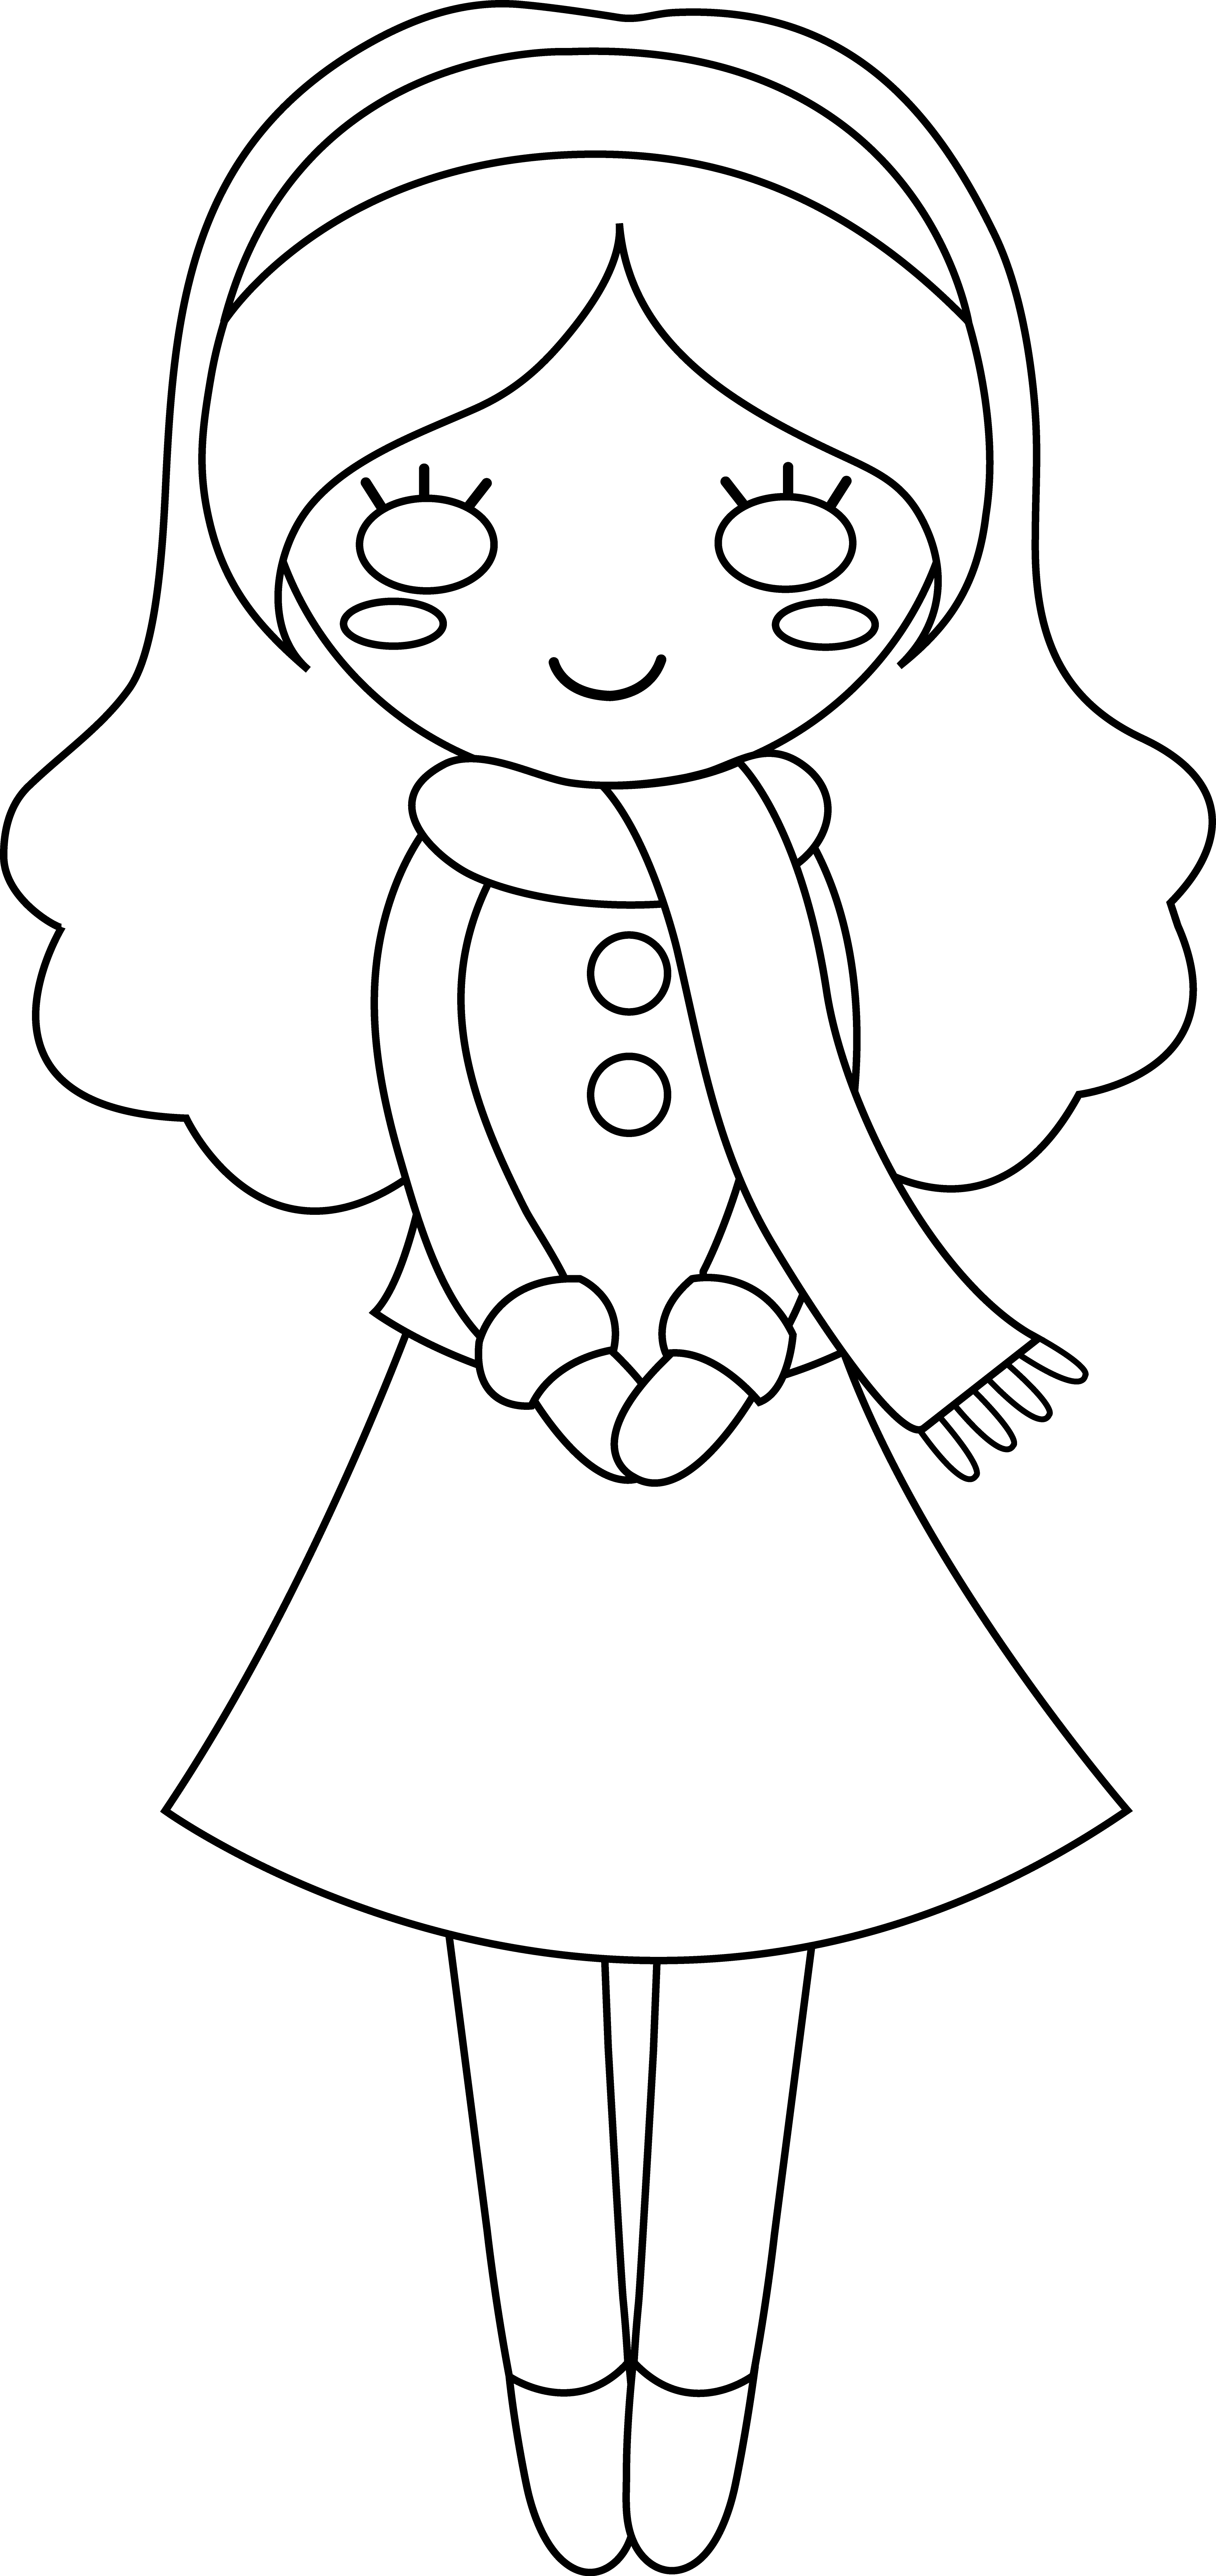 White girl scarf clipart transparent stock Cute Girl Colorable Line Art - Free Clip Art transparent stock